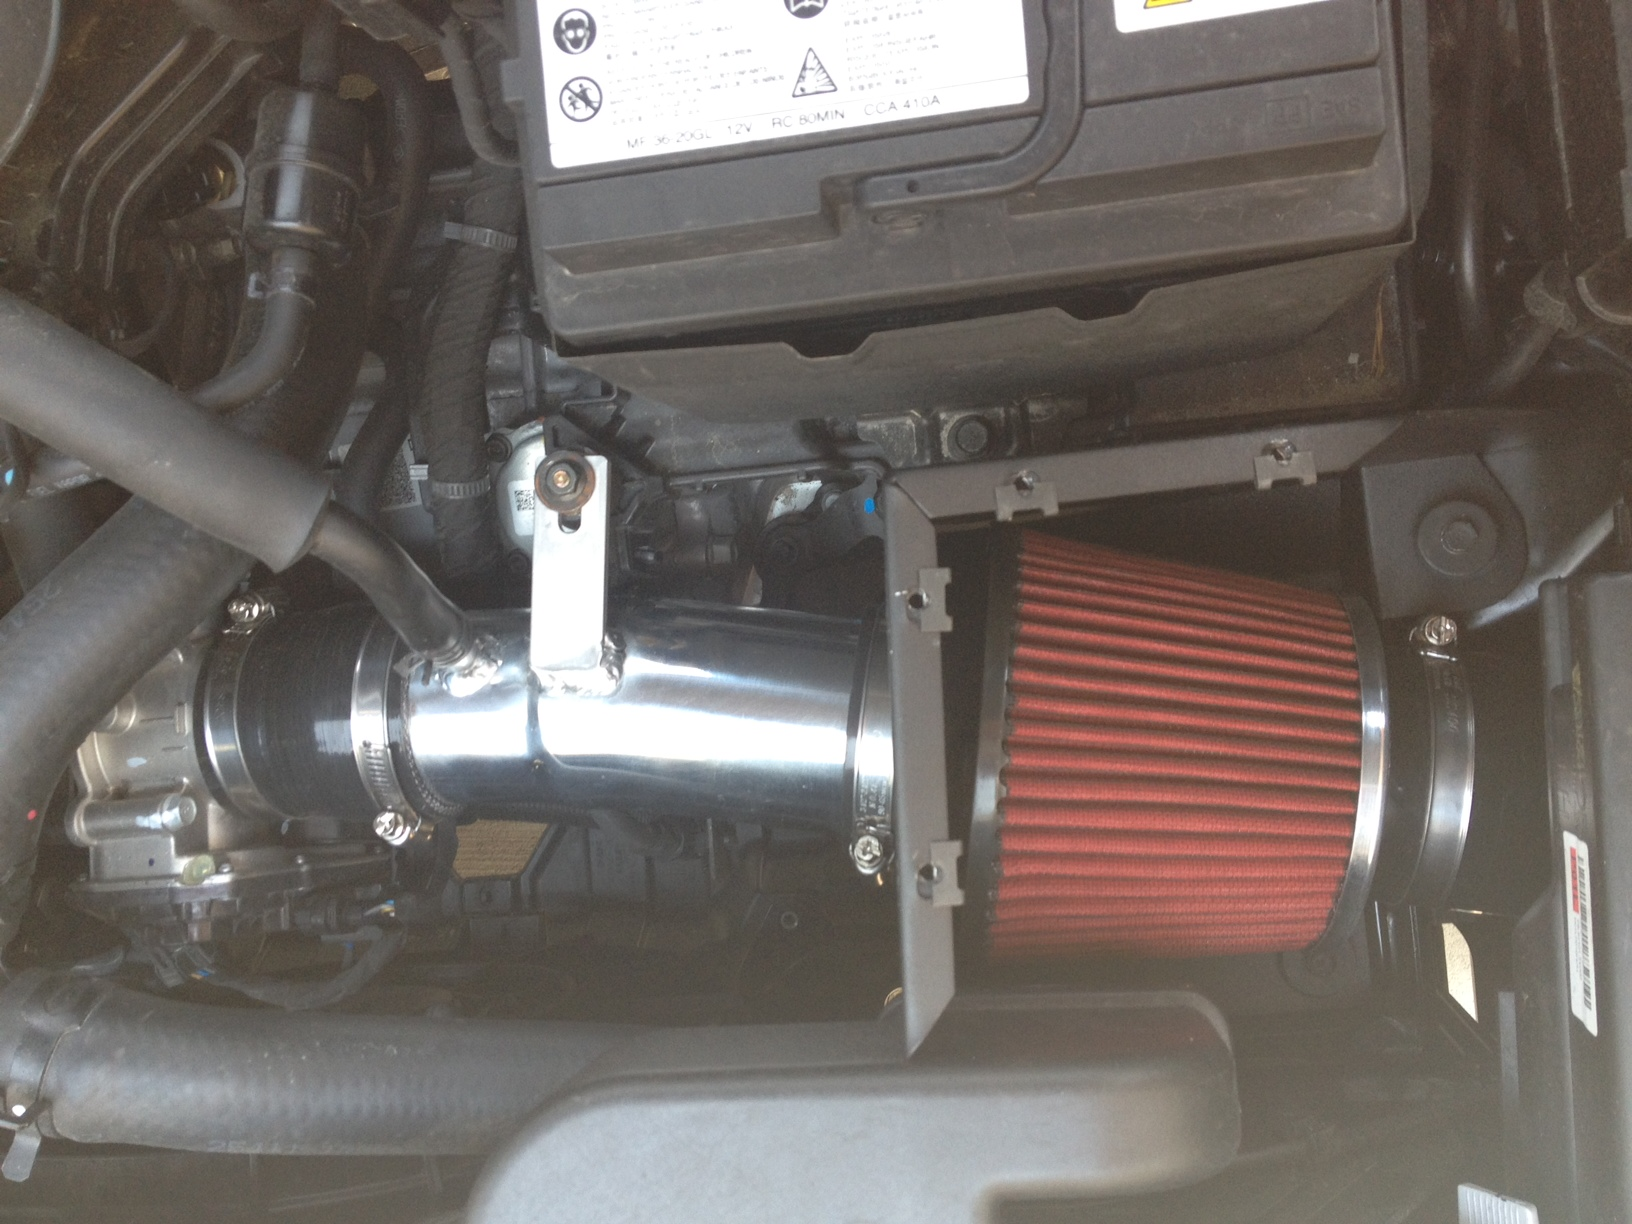 Turbokits cai finally arrived and installed turbokits cai finally arrived and installed engine2g sciox Choice Image